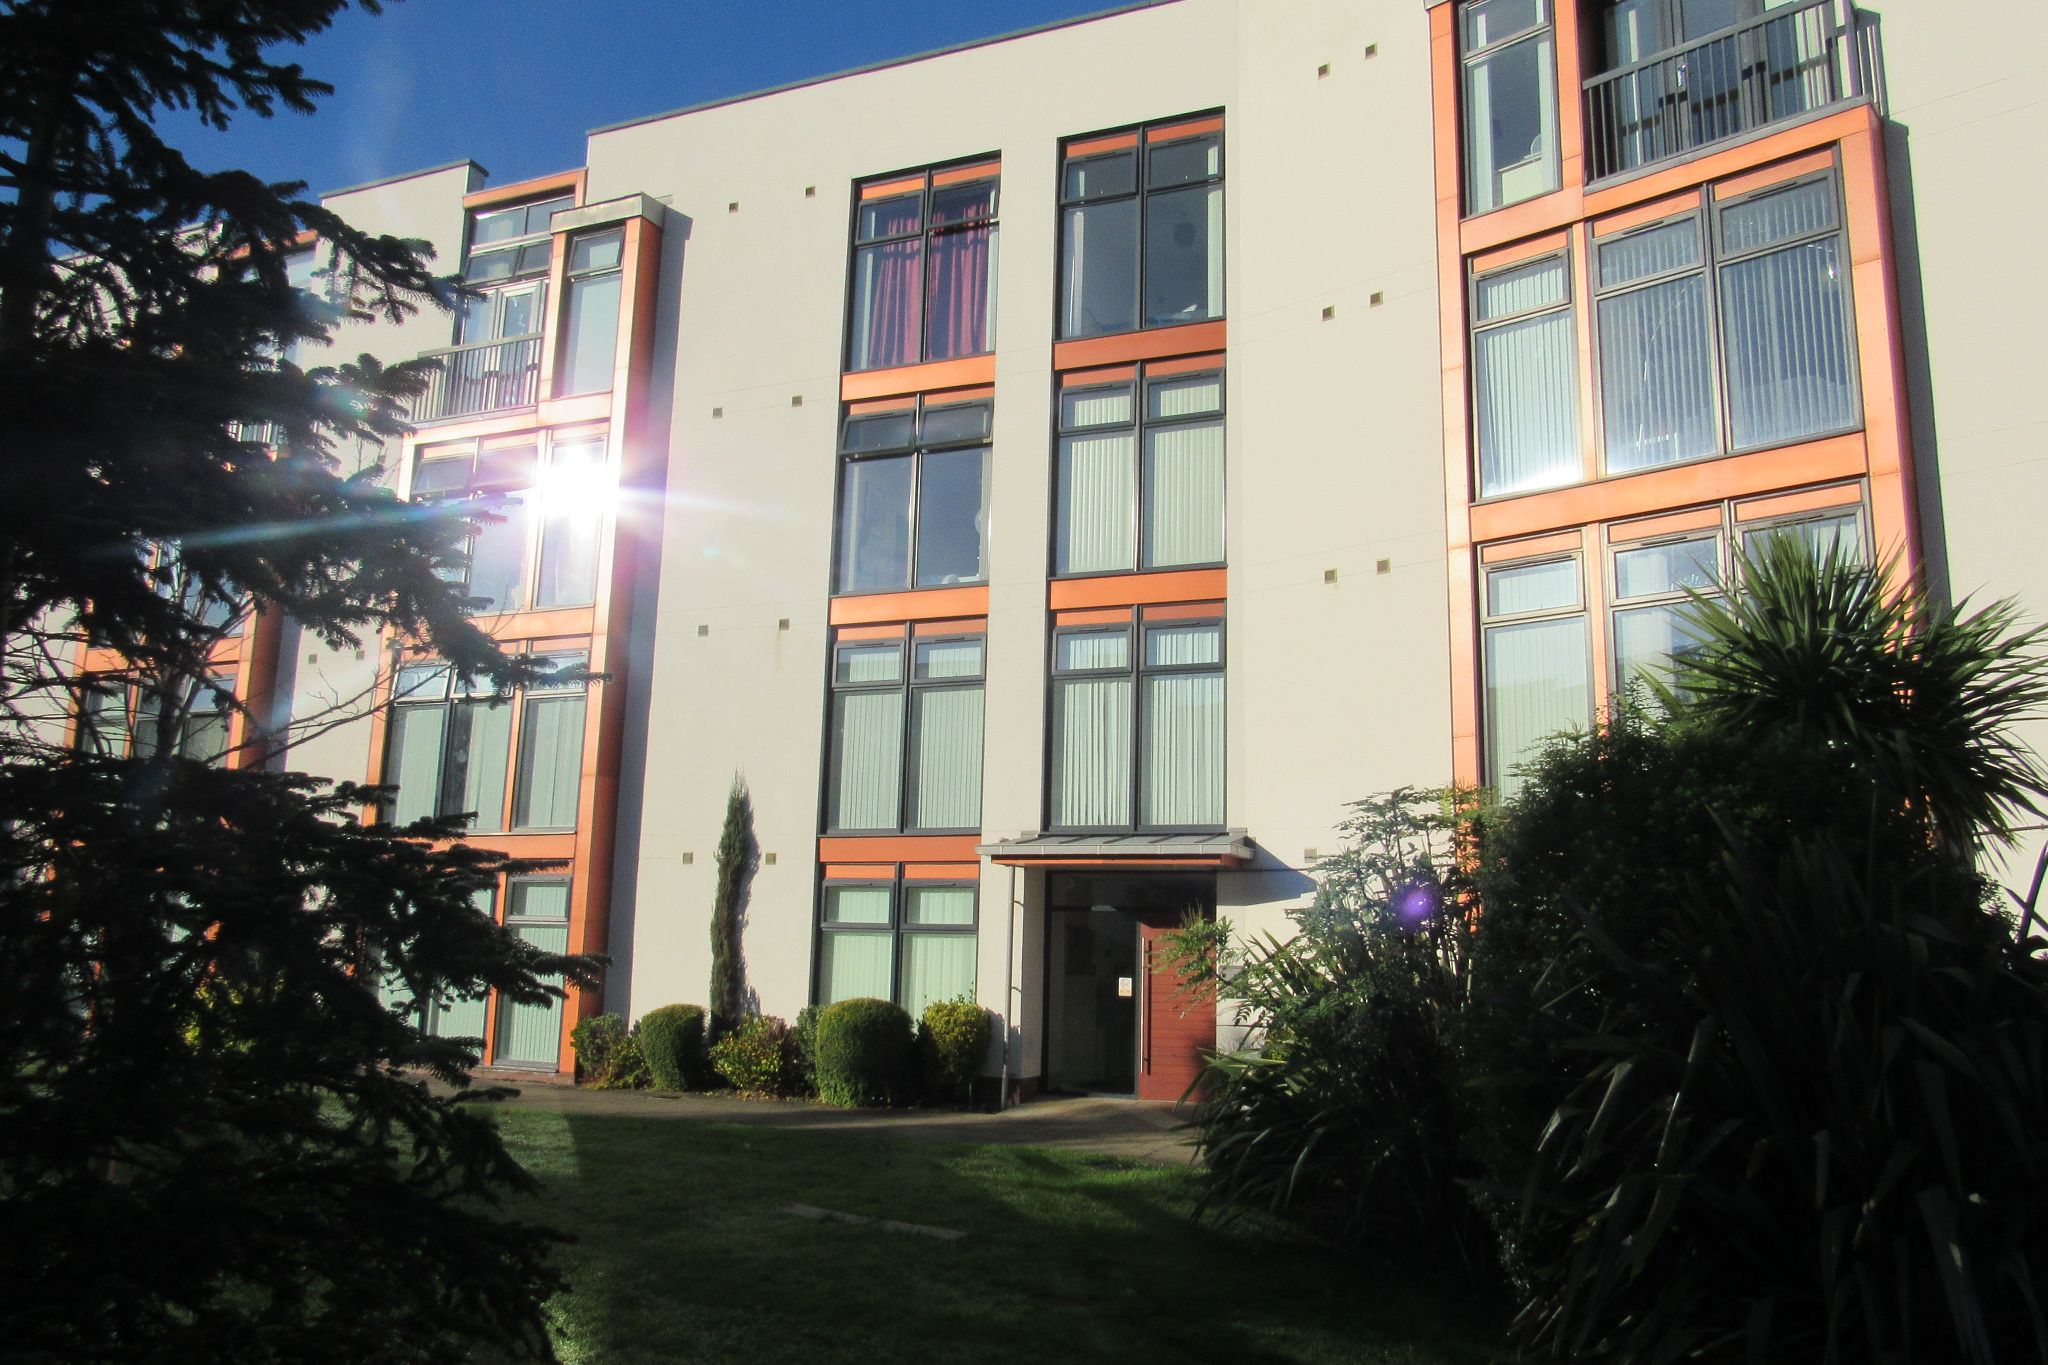 2 bedroom ground floor flat/apartment For Sale in Manchester - Photograph 2.